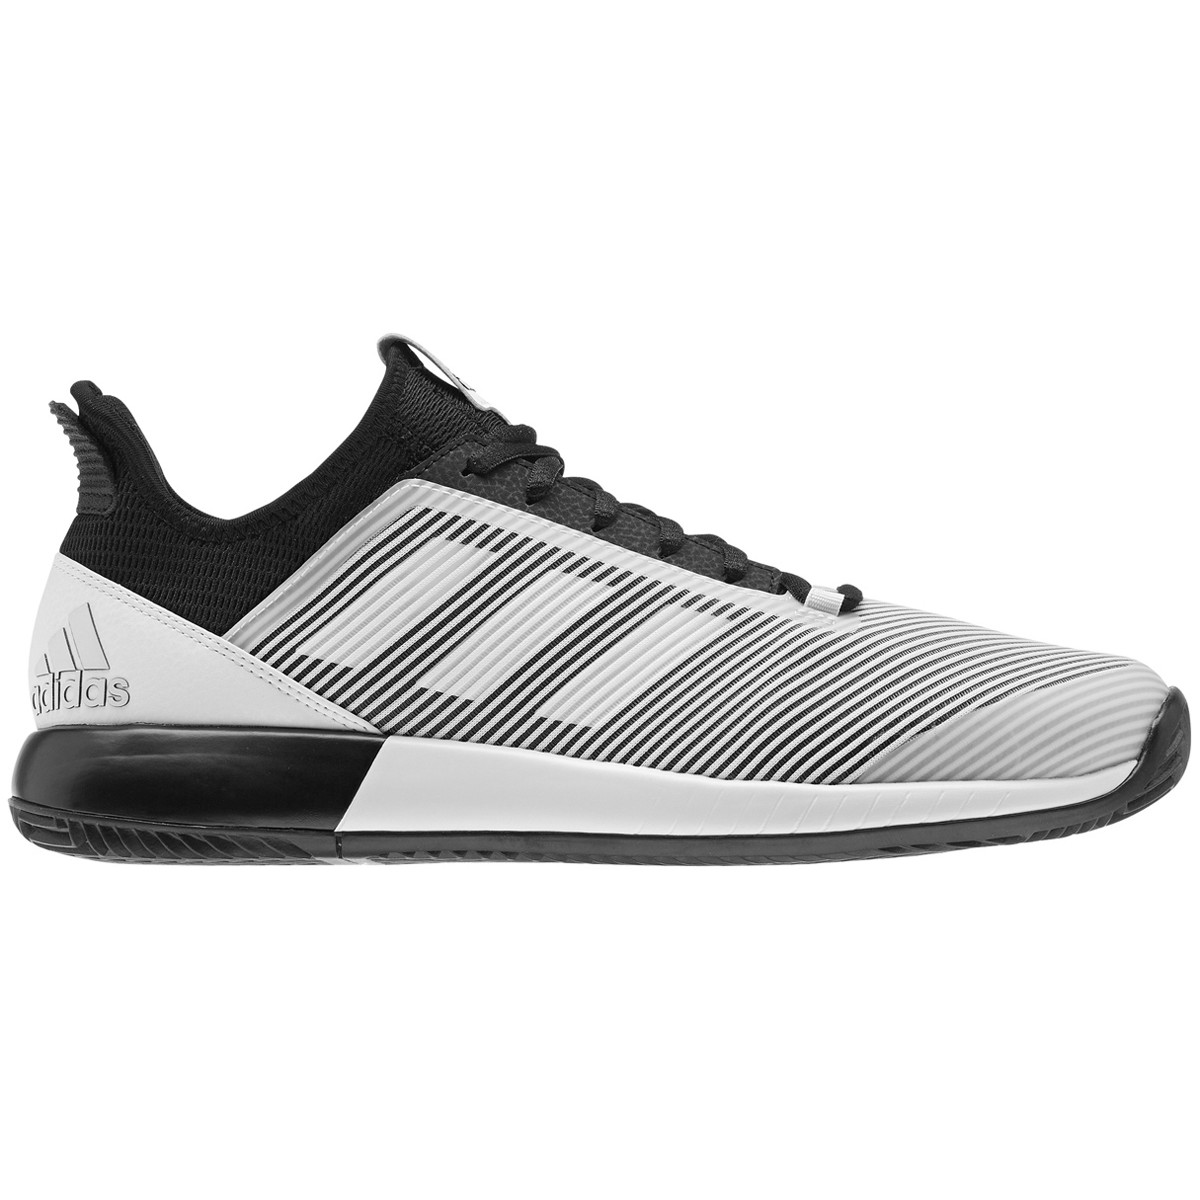 ADIDAS DEFIANT BOUNCE 2 CLAY COURT SHOES ADIDAS Men's